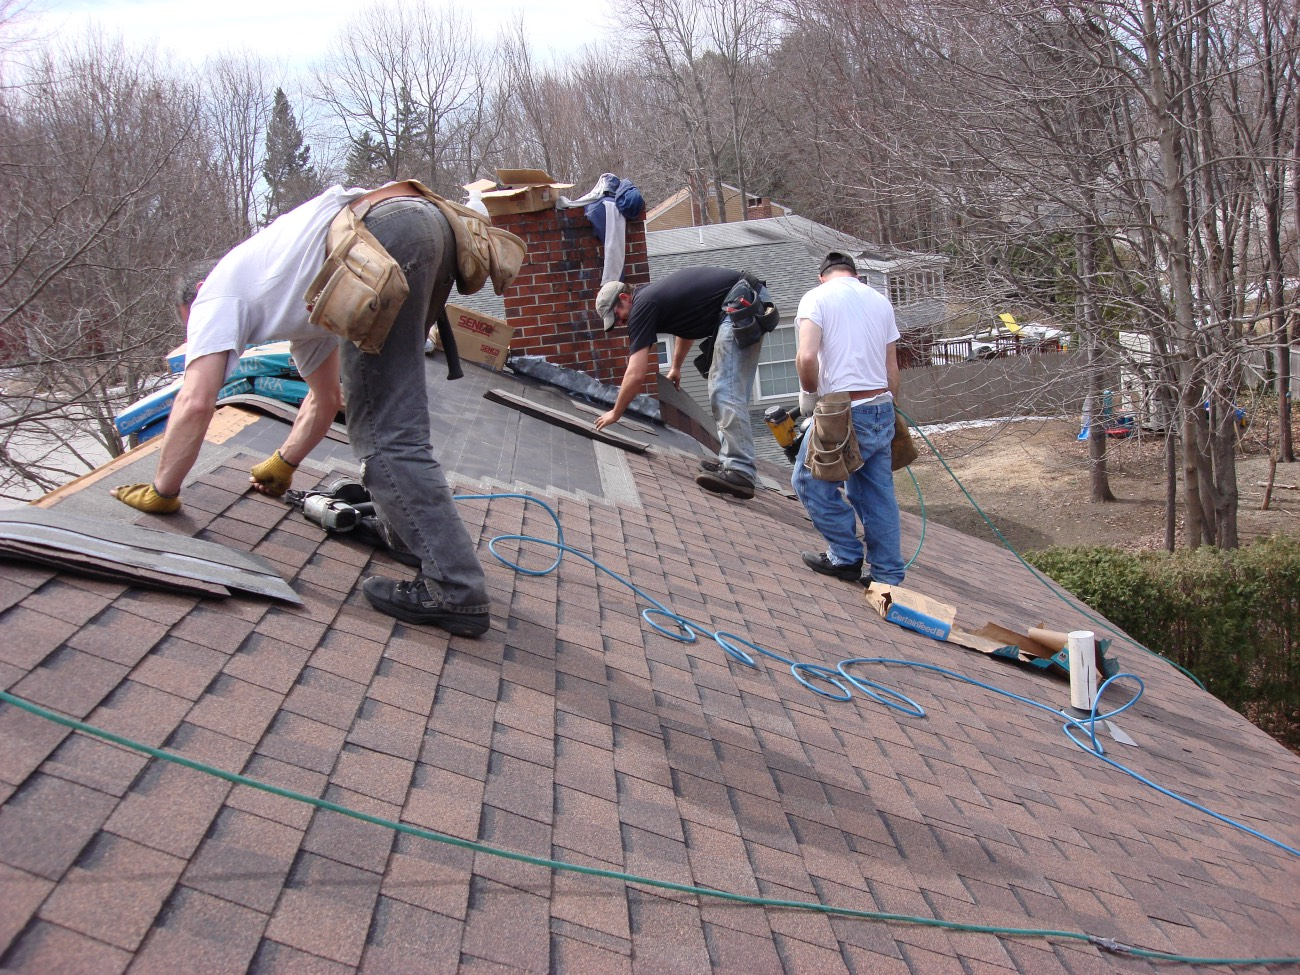 5 Things To Consider When Hiring A Roofing Contractor